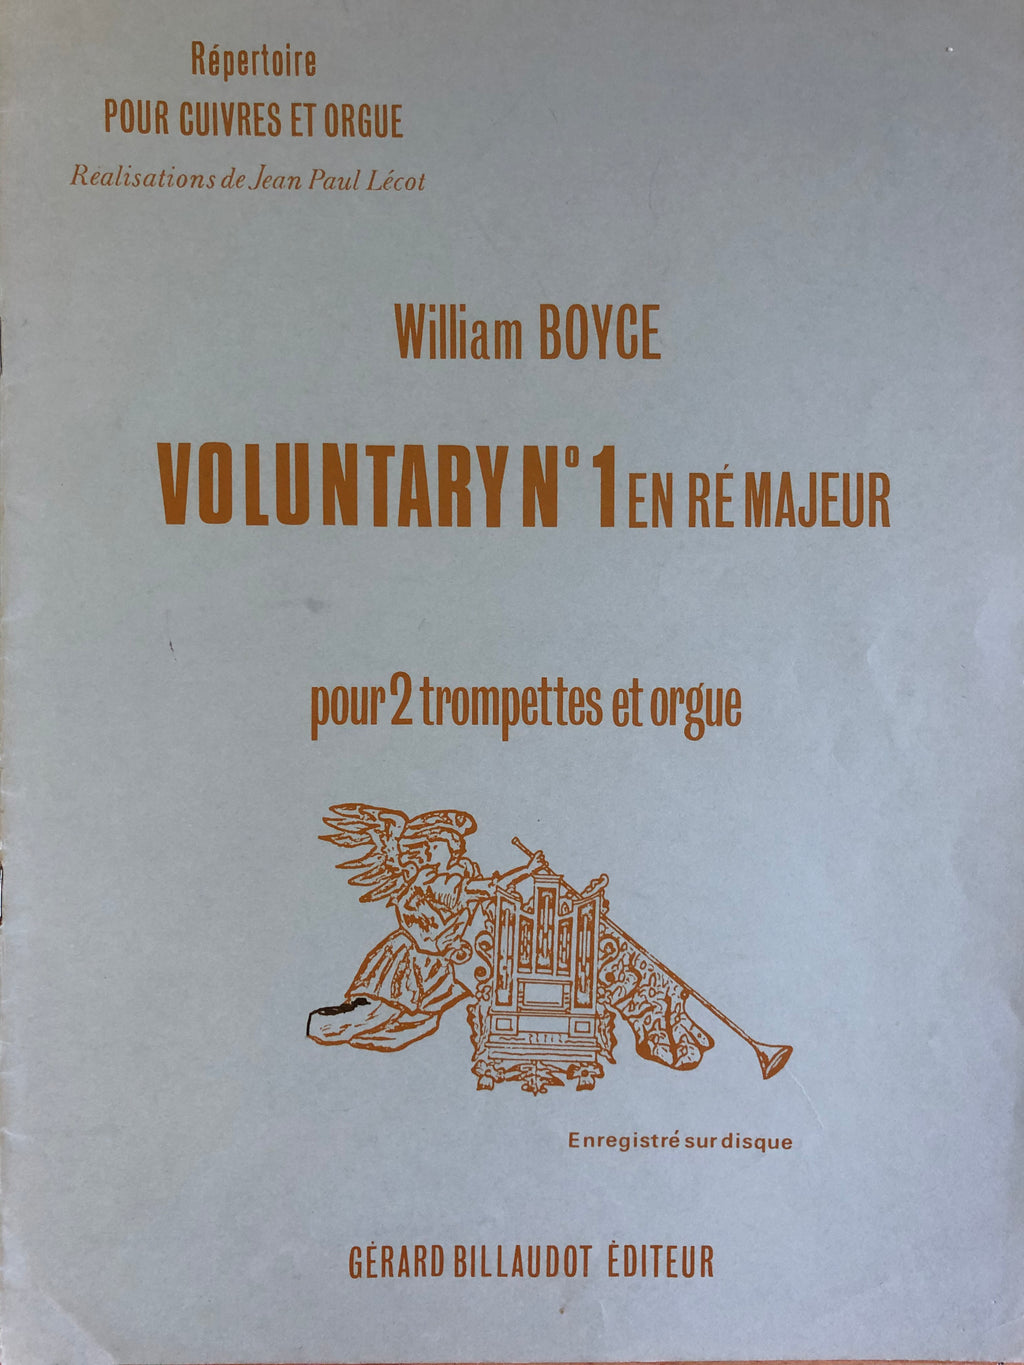 Voluntary nr 1 voor 2 trompetten en orgel, William Boyce - Scattando Verkleedhuis